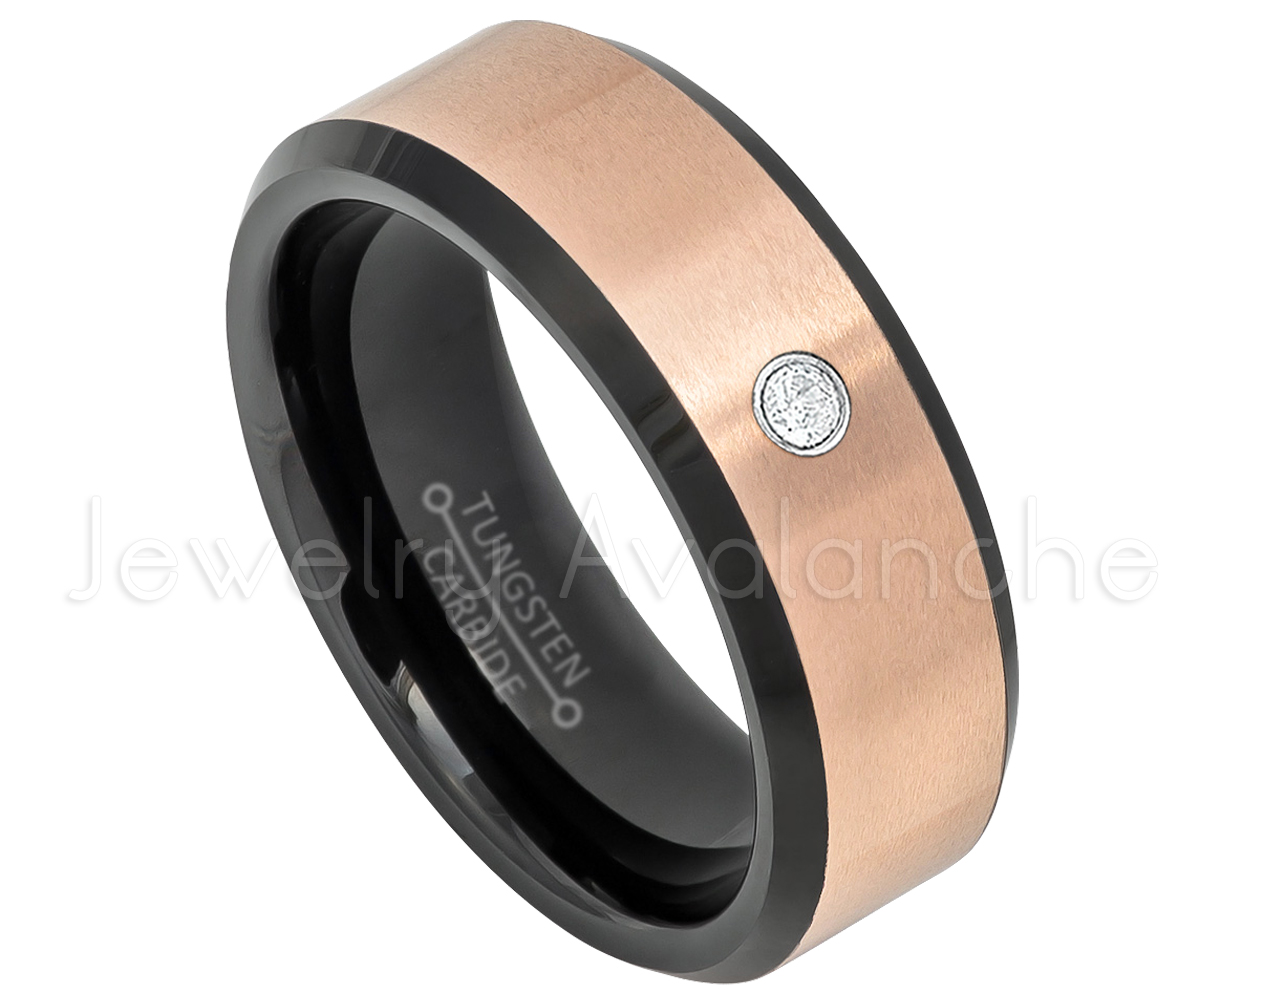 Brushed Finish Grooved Comfort Fit Pipe Cut Tungsten Carbide Wedding Ring TN030BS June Birthstone Ring 0.07ct Alexandrite Solitaire Ring